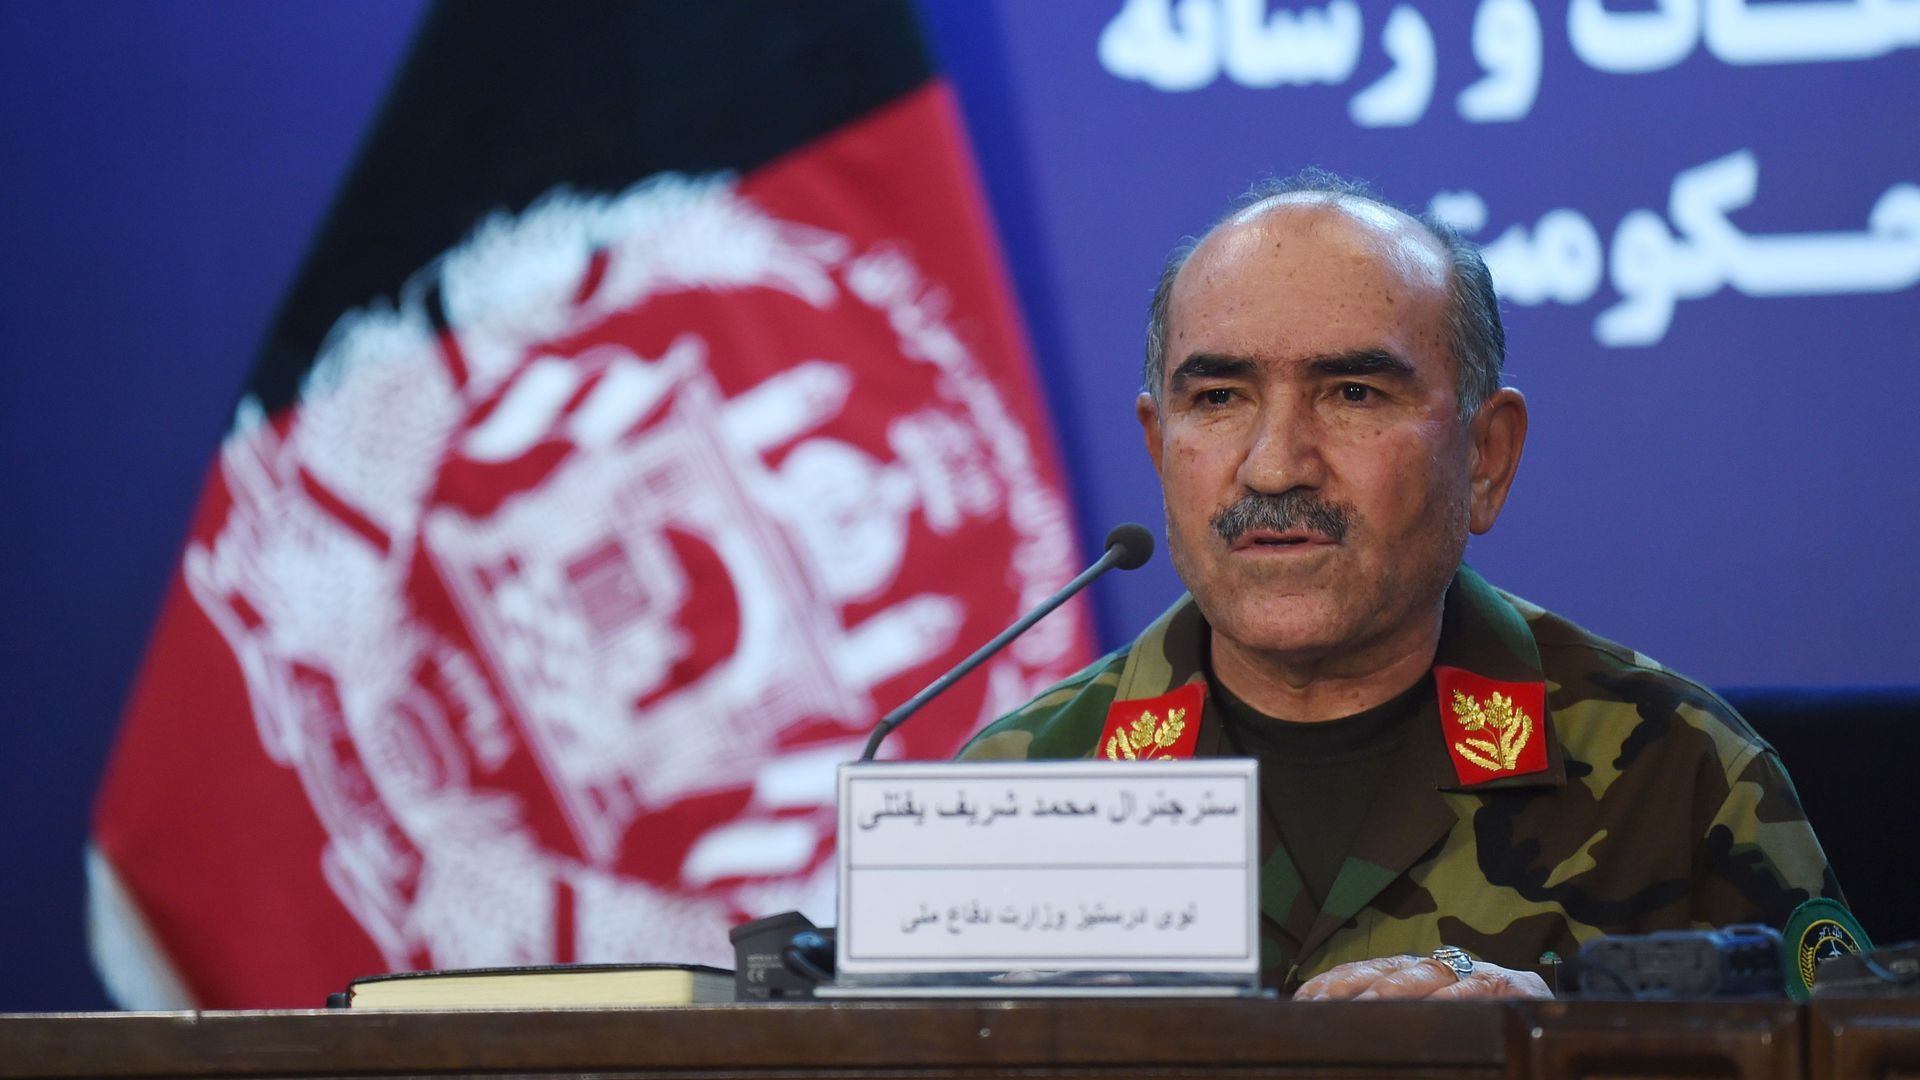 Afghan Army Chief of Staff, General Sharif Yaftali, during a press conference in Kabul on June 7, 2018.